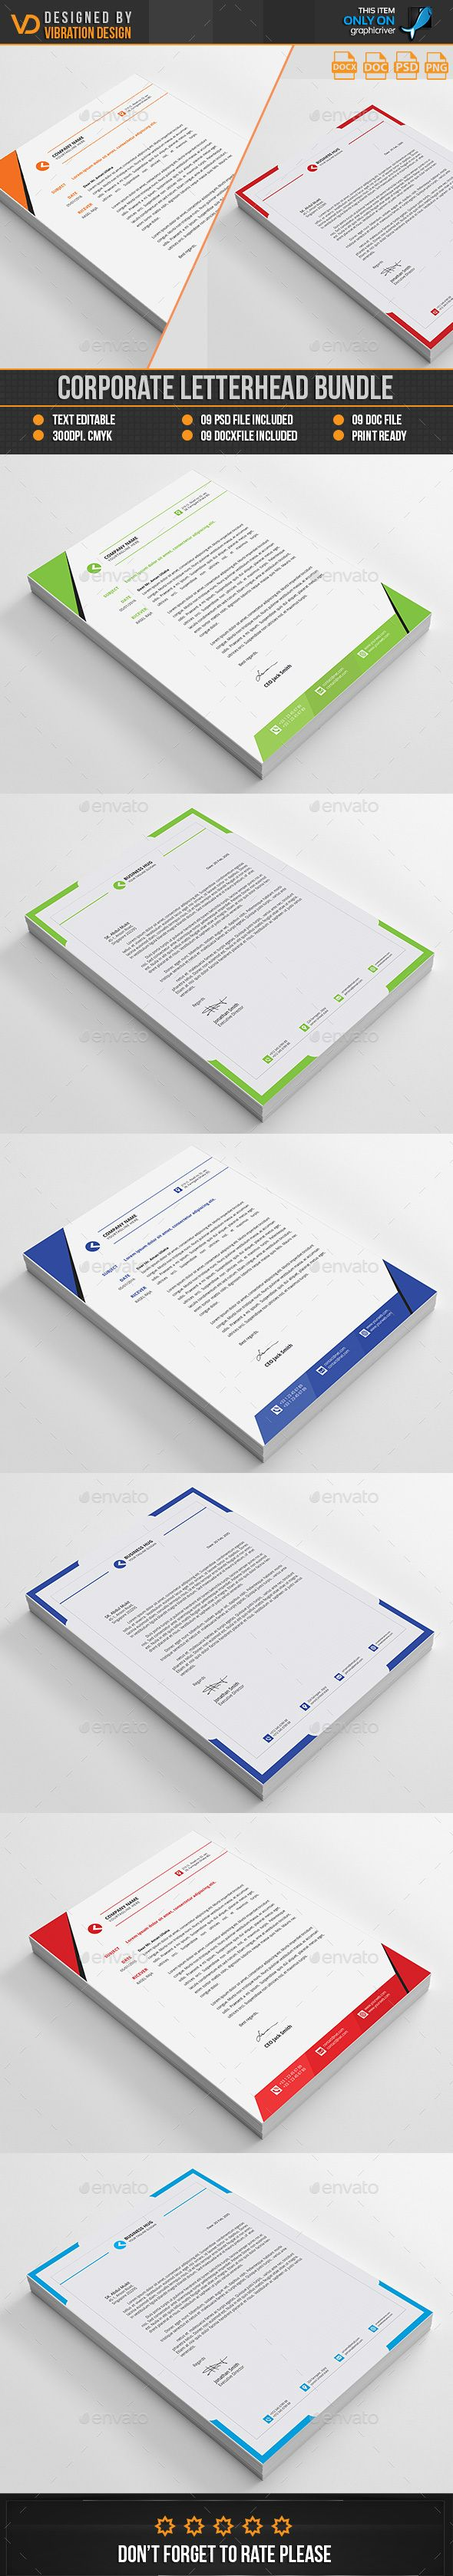 Offer letter format in word free download best of corporate corporate letterhead vol template stationery printing and corporate letterhead vol stationery print templates download here https graphicriver net item spiritdancerdesigns Choice Image